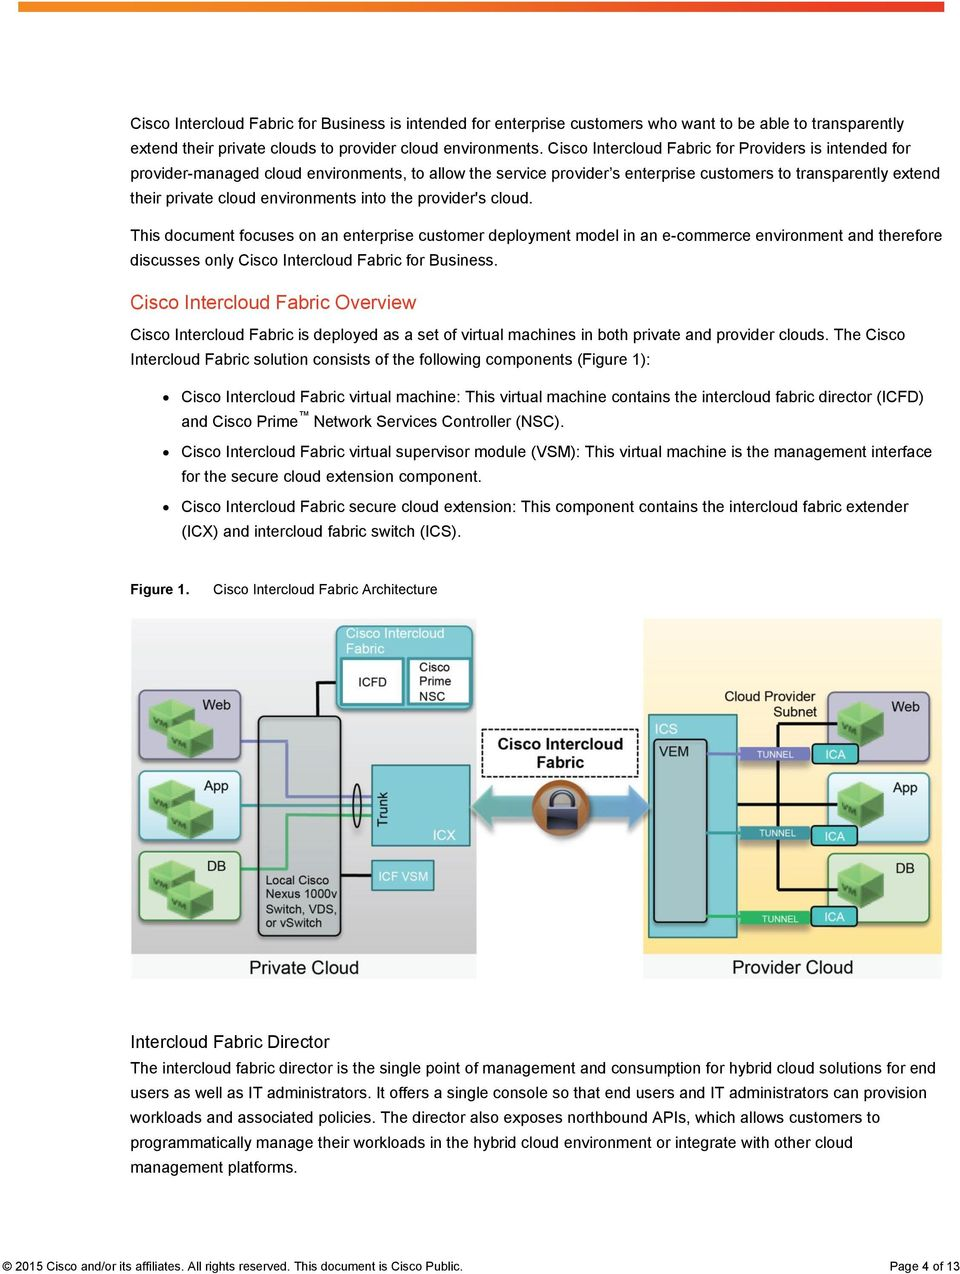 environments into the provider's cloud. This document focuses on an enterprise customer deployment model in an e-commerce environment and therefore discusses only Cisco Intercloud Fabric for Business.